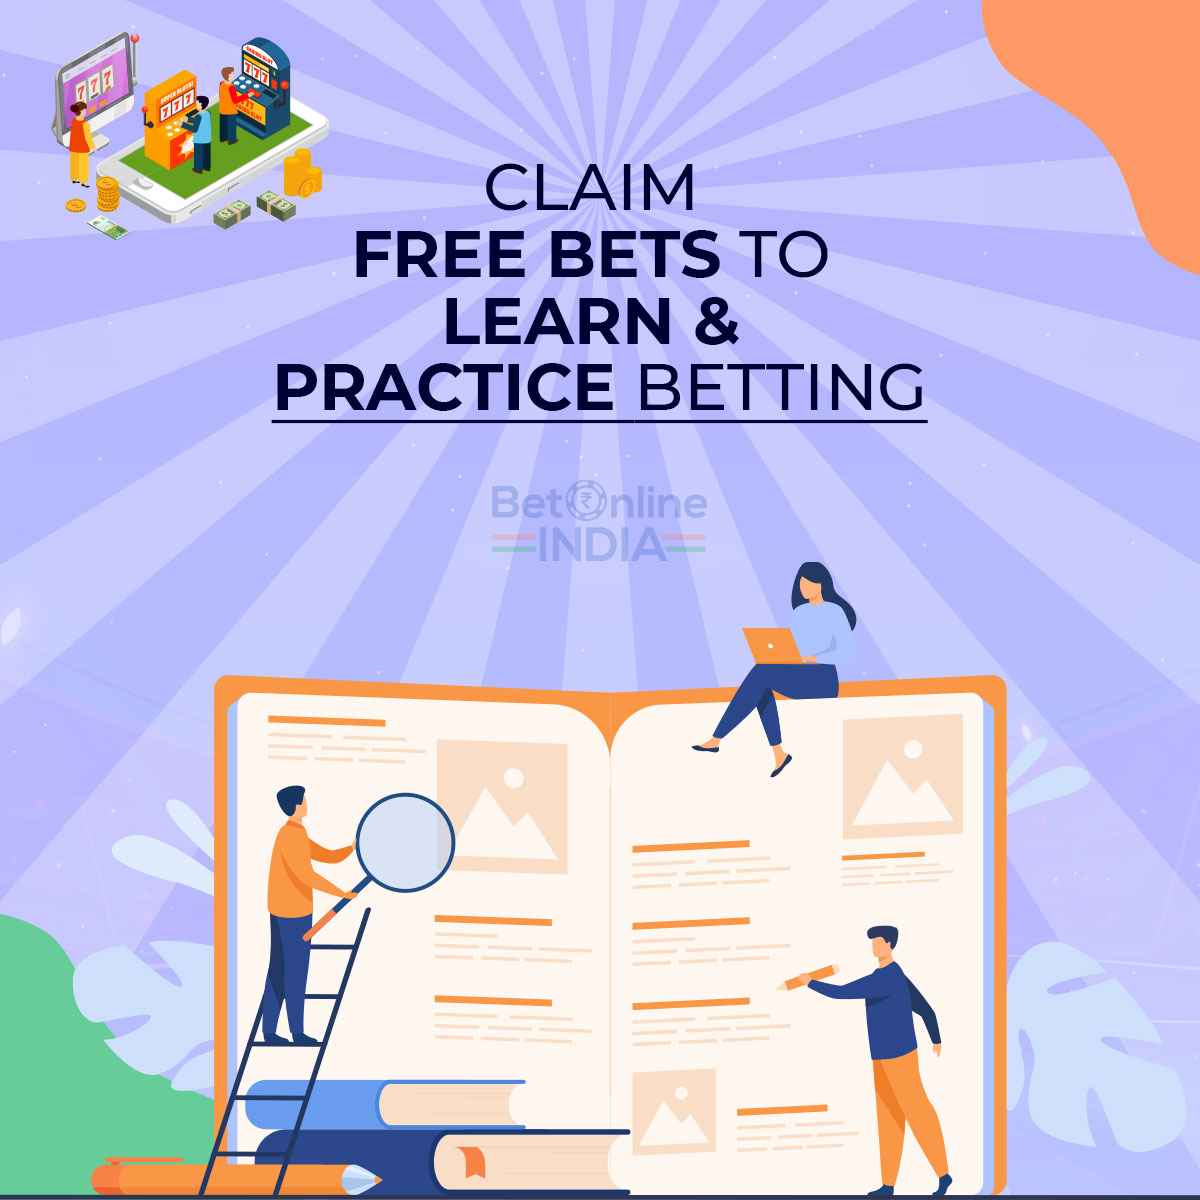 claim free bets to practice